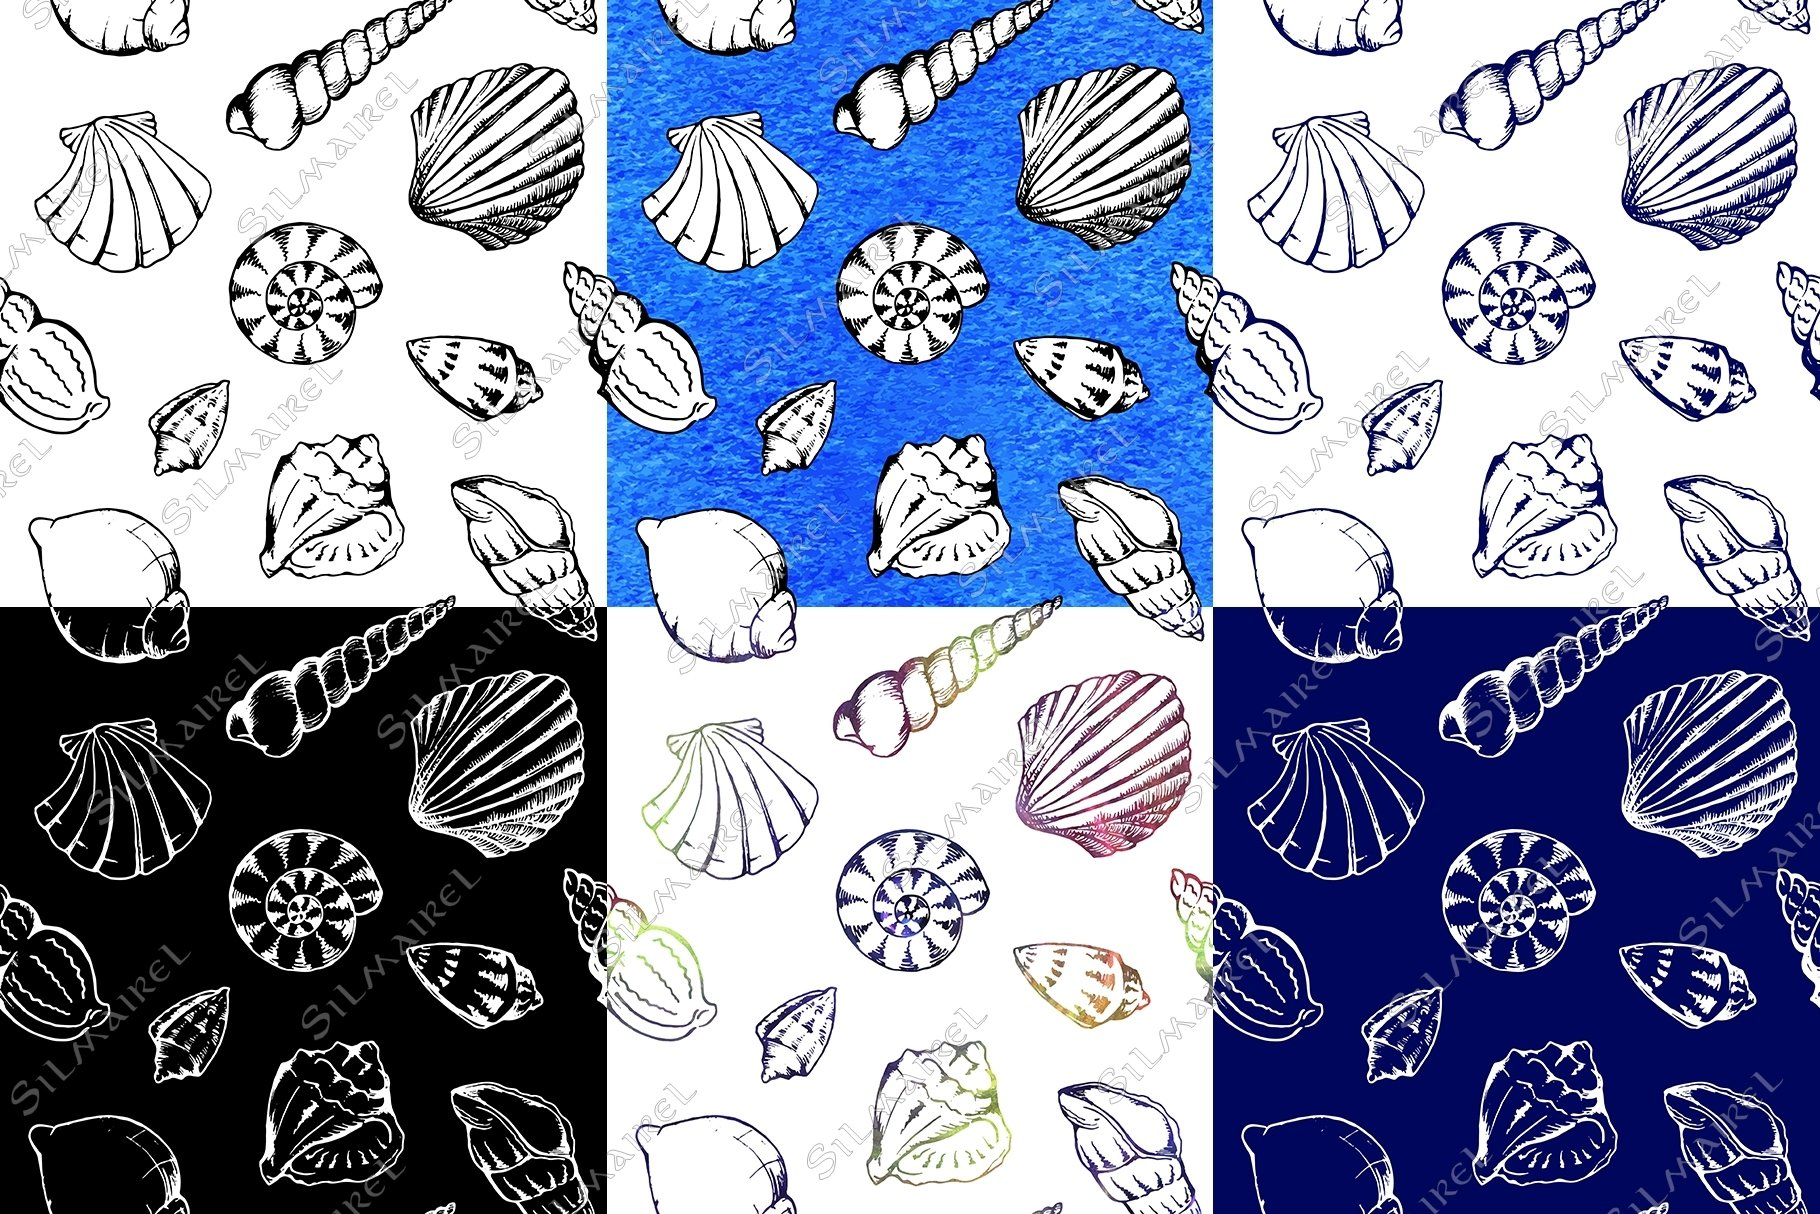 Seashell ink set vector example image 5